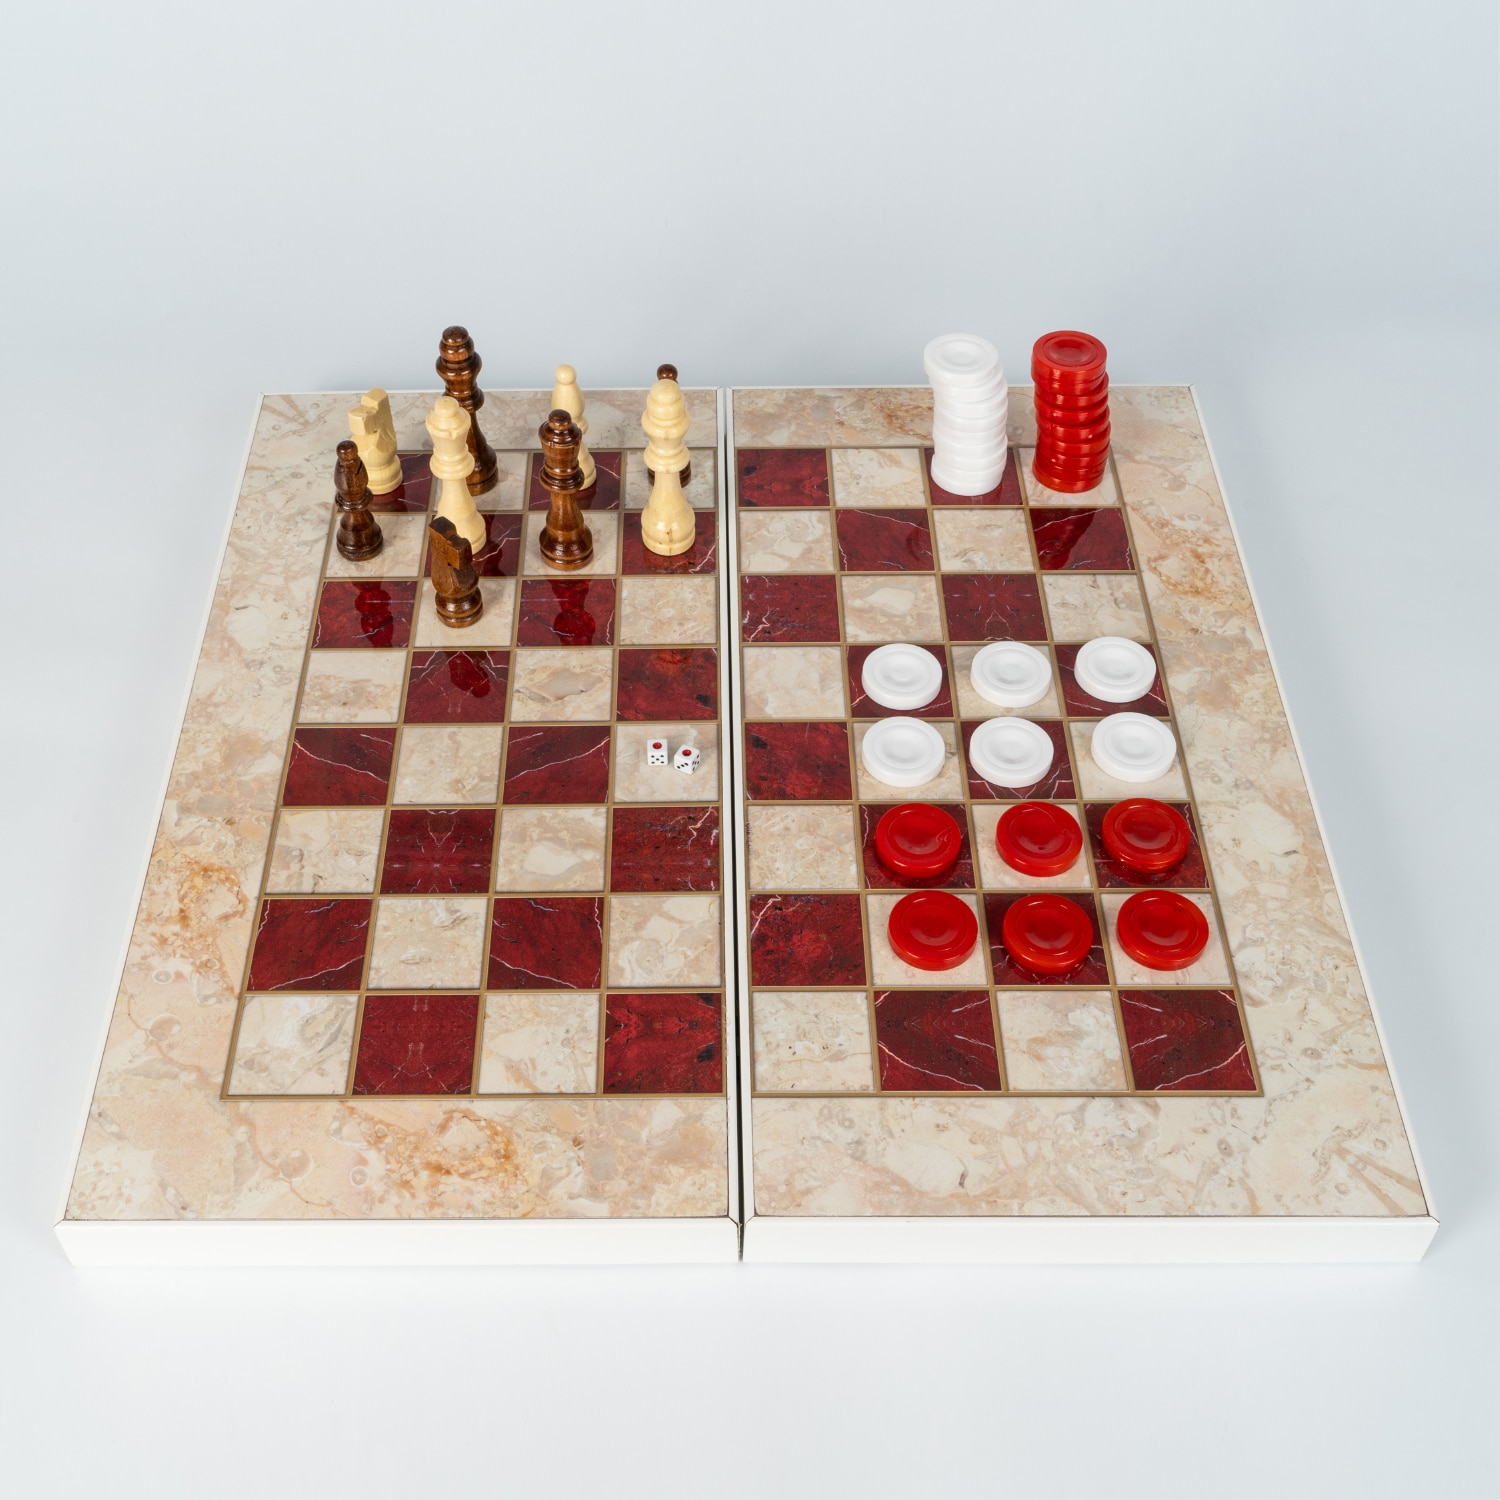 Classic Backgammon Chess Checkers Board Game Tavla 3 in 1 Wooden Red & White Design Big Size Perfect Gift Full Pieces Inc.